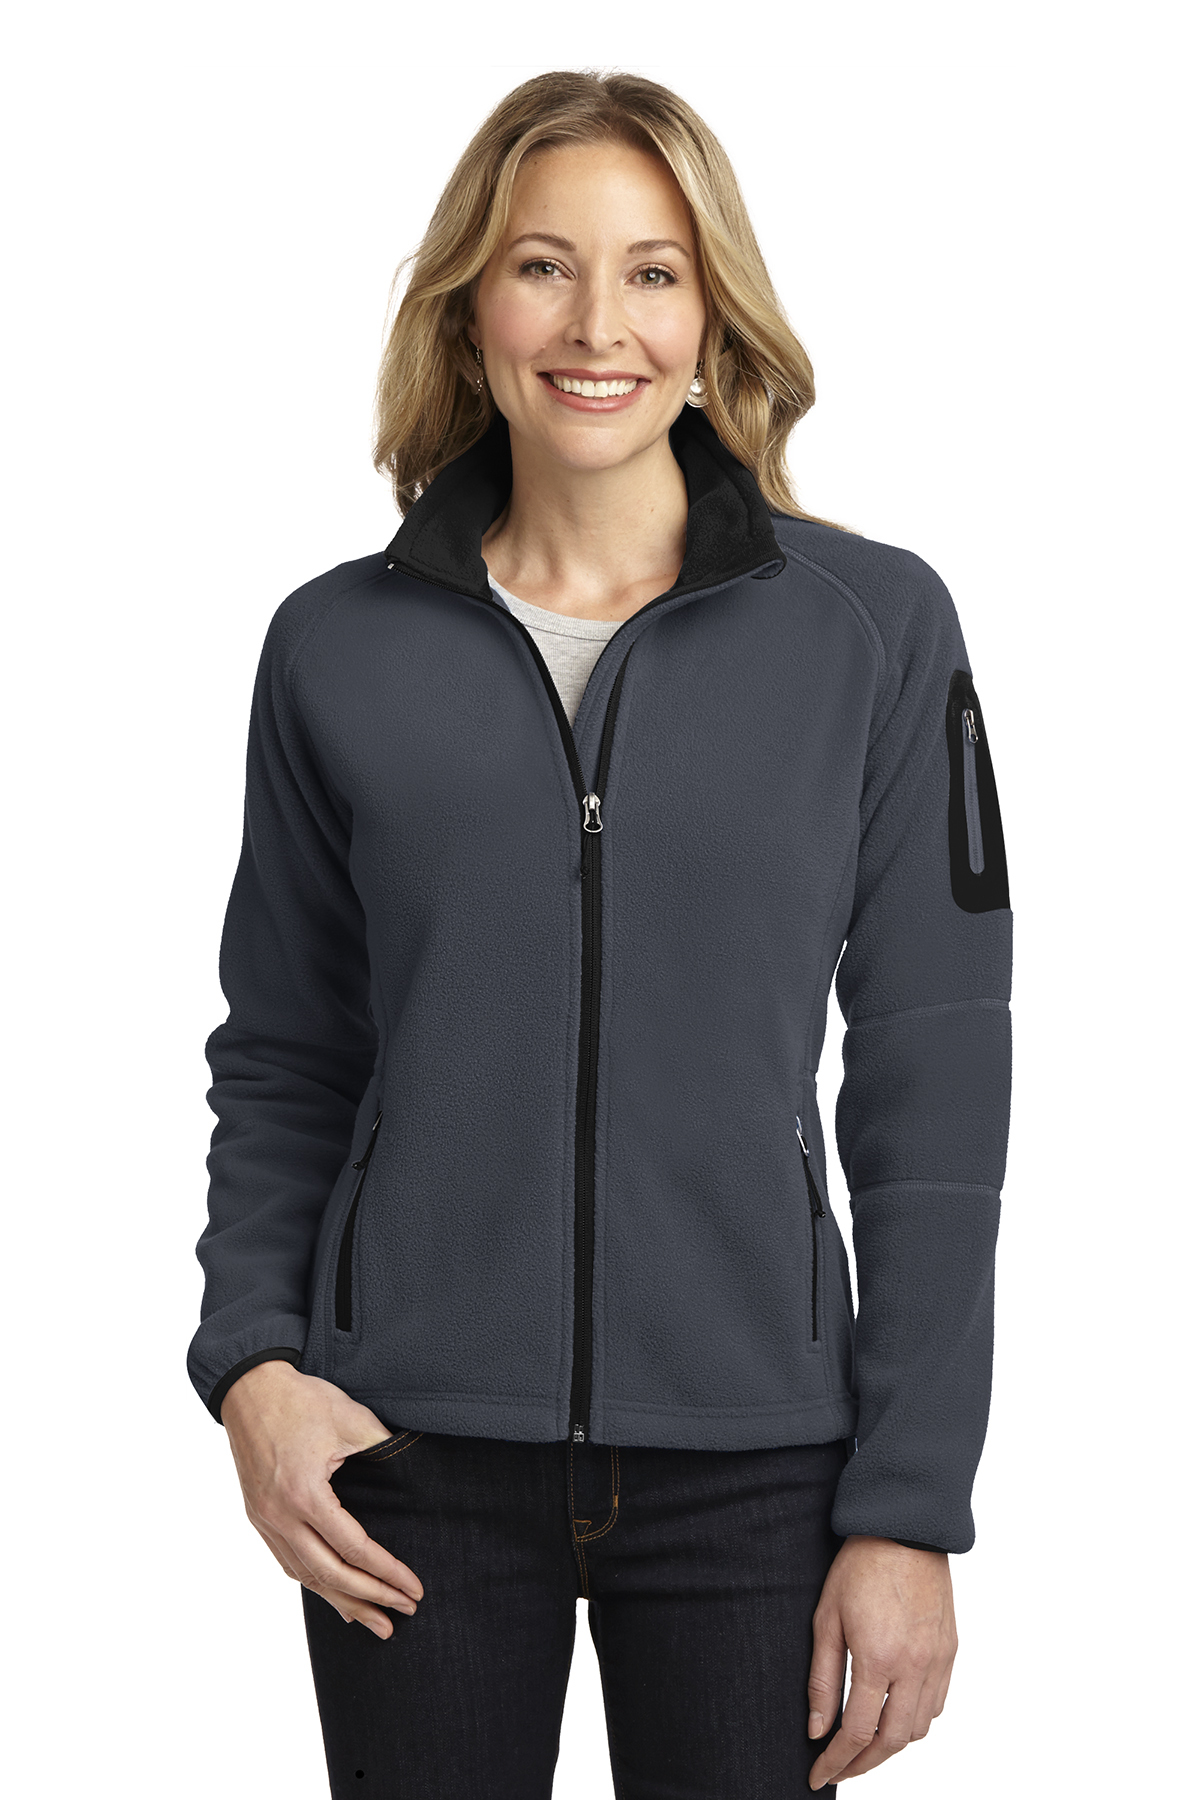 Ladies Enhanced Value Full-Zip Fleece